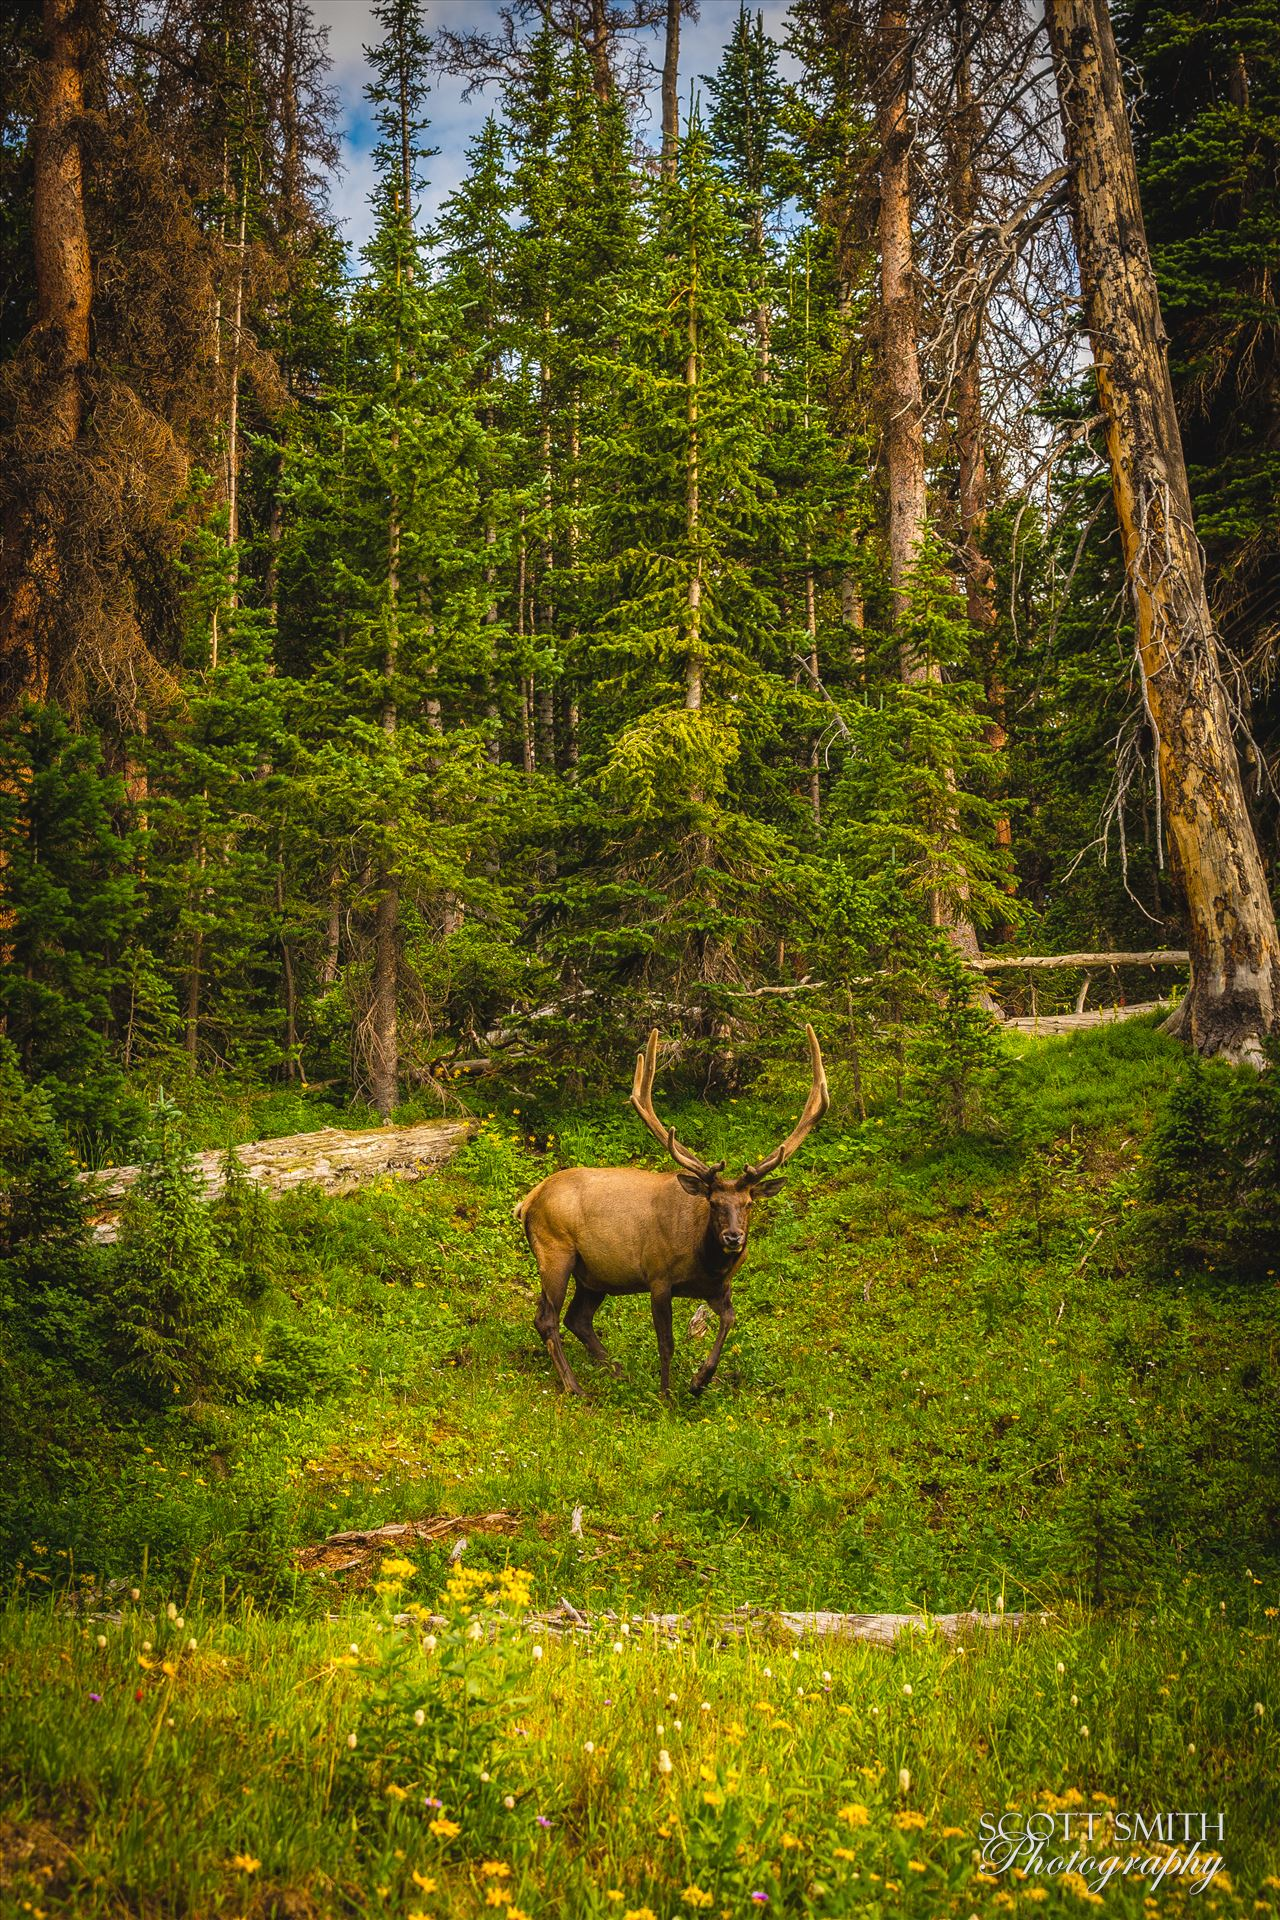 Elk in the Wild No 2 - A large buck enjoying a summer day in the Rocky Mountain National Park. by Scott Smith Photos